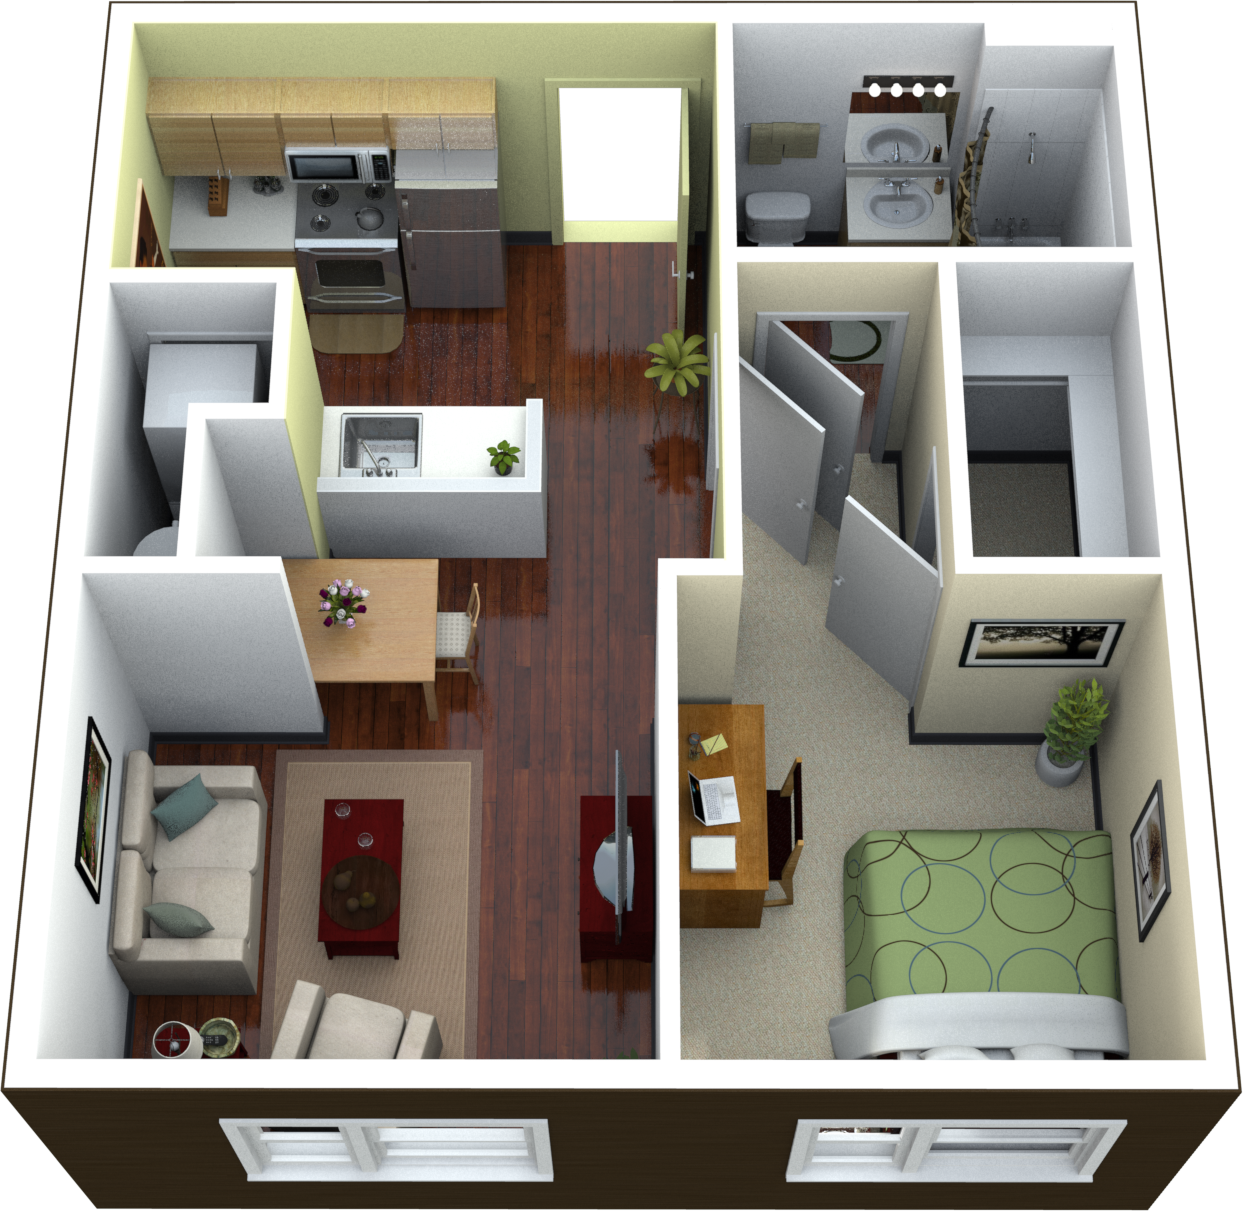 Bedroom Floor Plans For Apartment Design Ideas - One 1 bedroom floor plans and houses